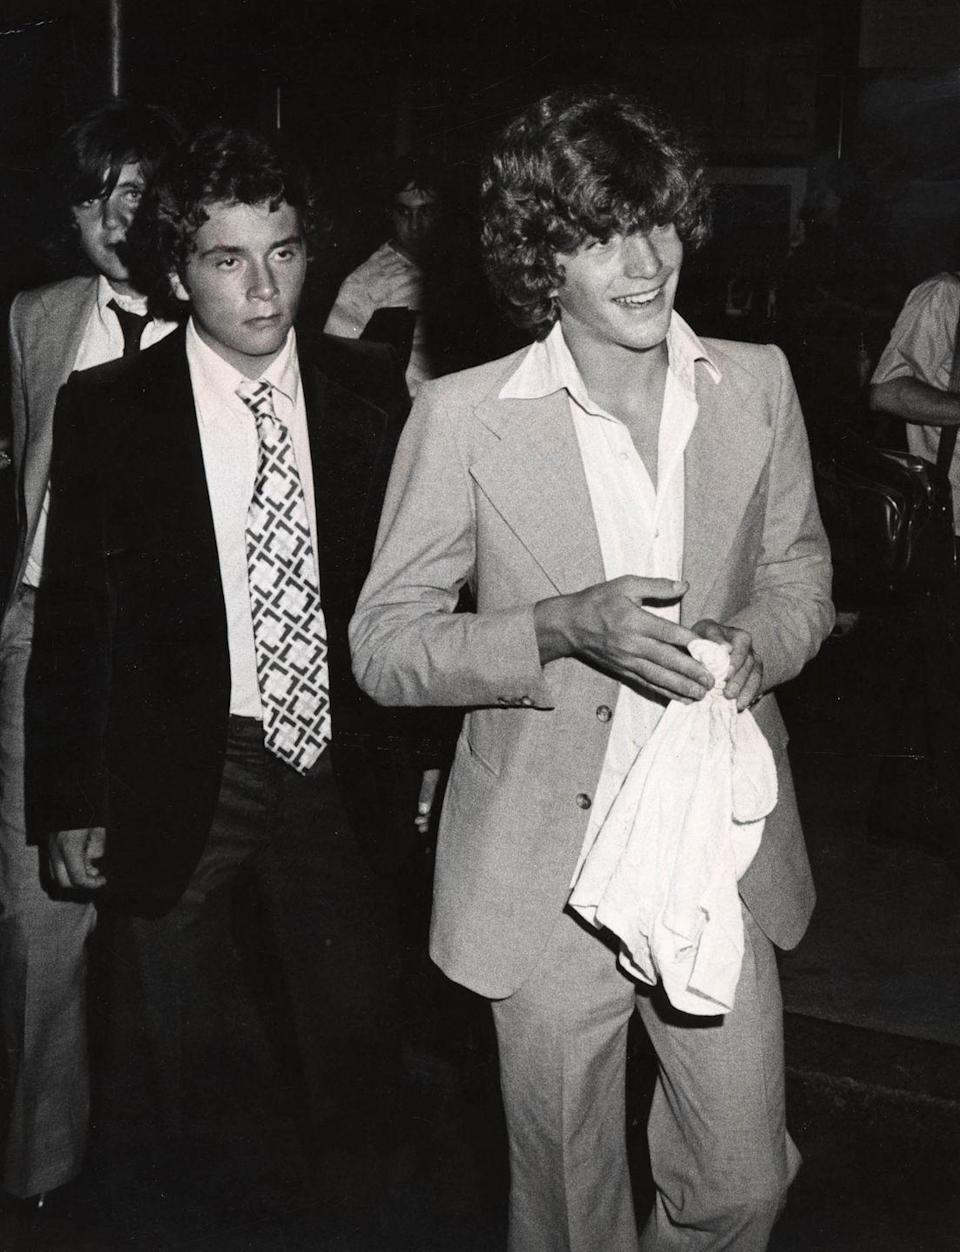 <p>John F. Kennedy Jr. and Anthony Radziwill during the RFK Pro-Celebrity Tennis Tournament Party at the Rainbow Room in New York City in 1976.</p>